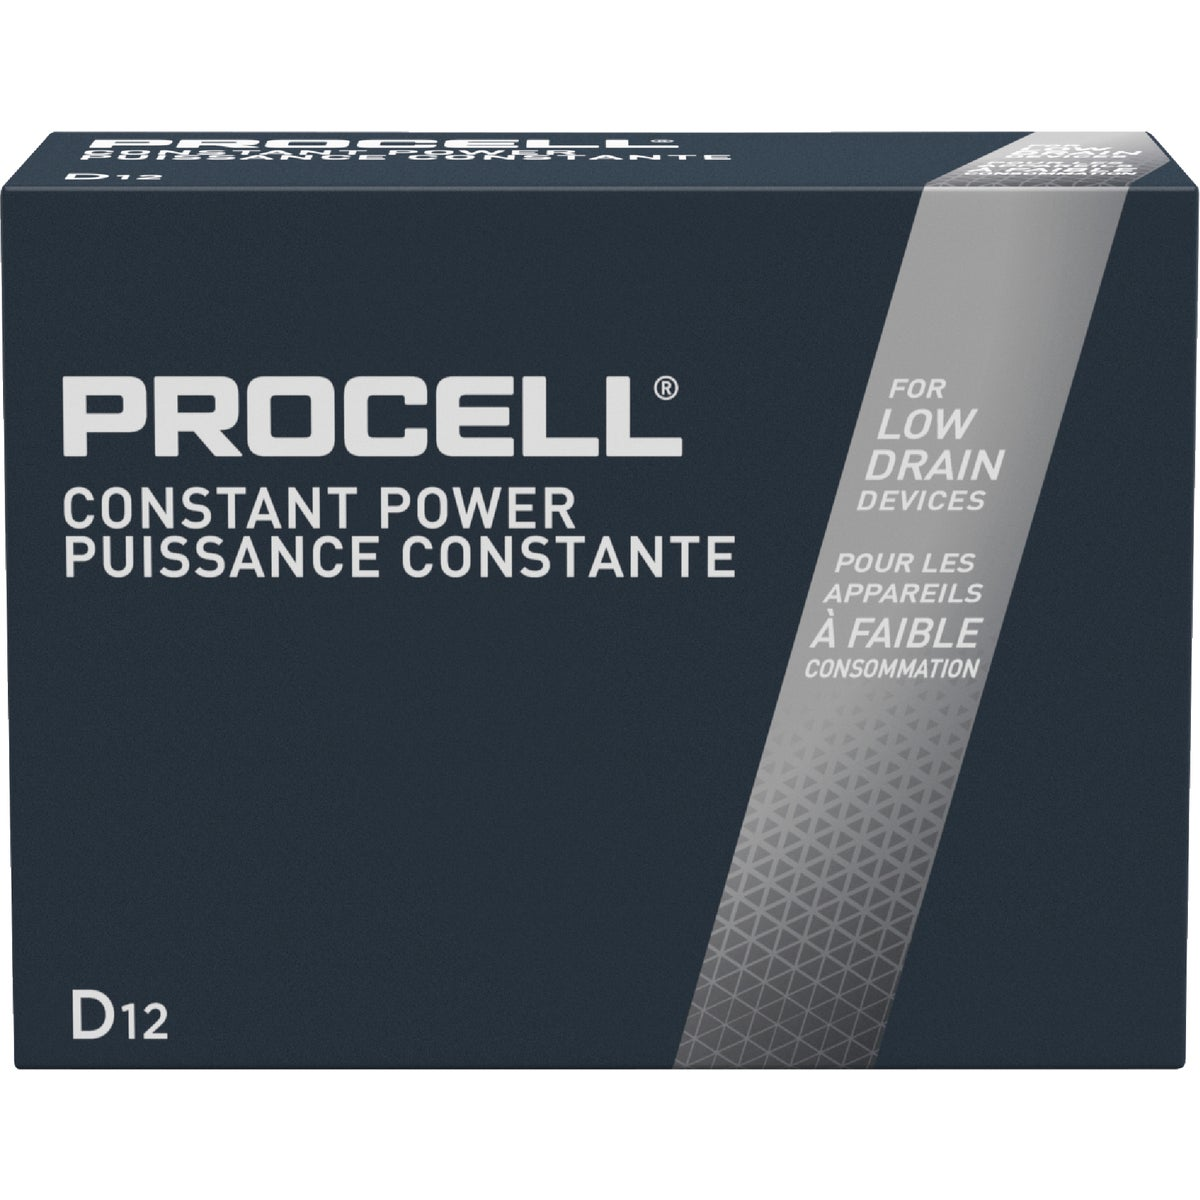 12PK D PROCELL BATTERY - 85395 by P & G  Duracell